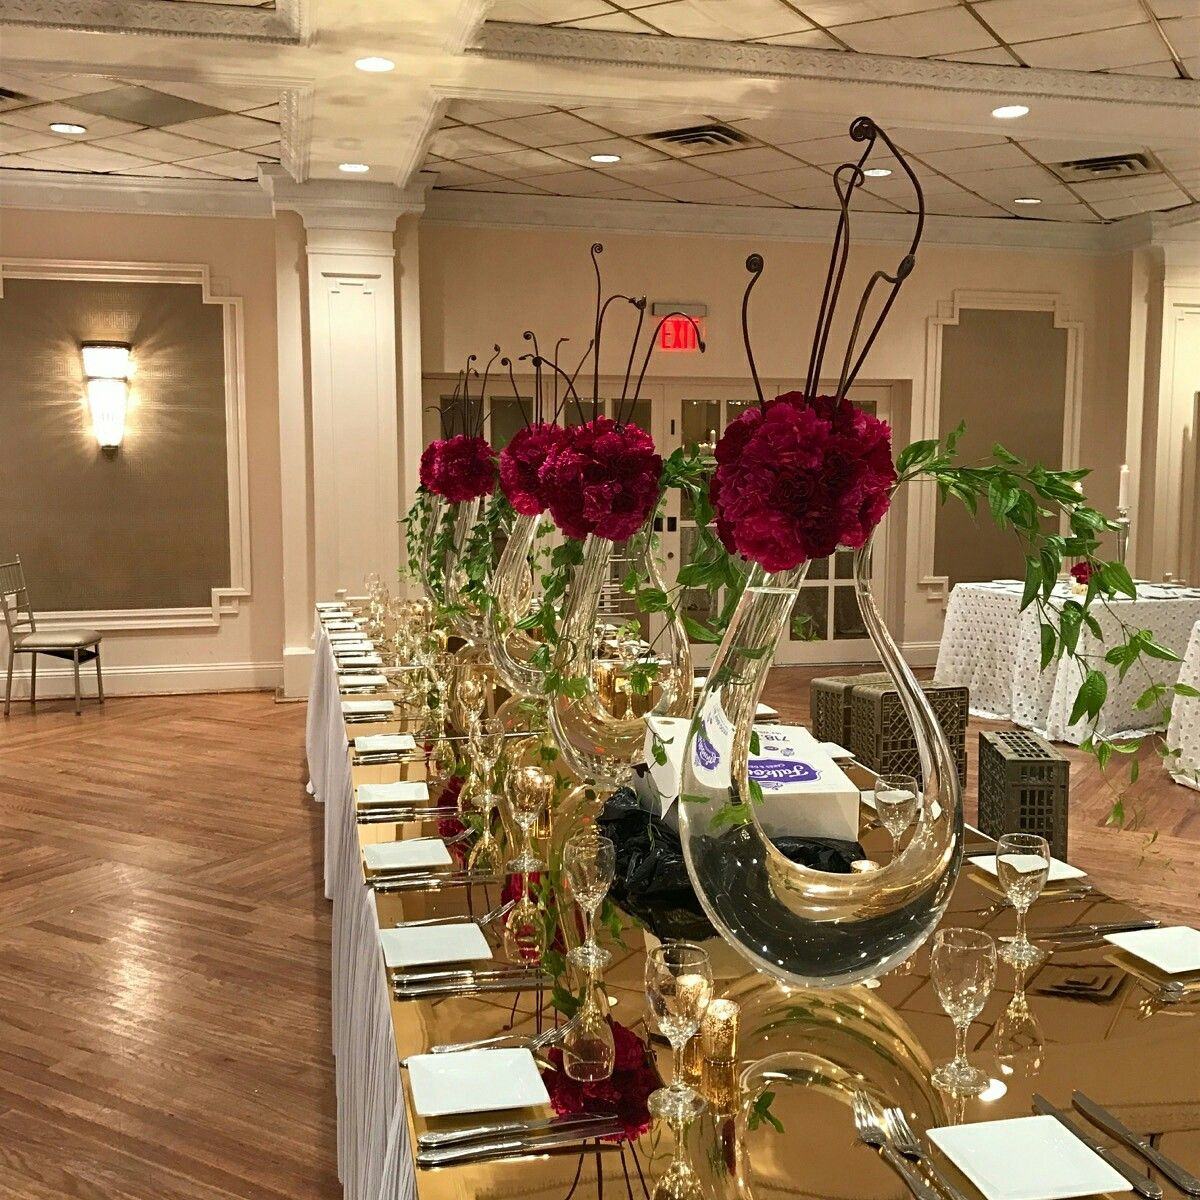 Romantic Wedding Table Centerpieces: Pin By Mohammad Din On Wedding Centerpieces In 2019